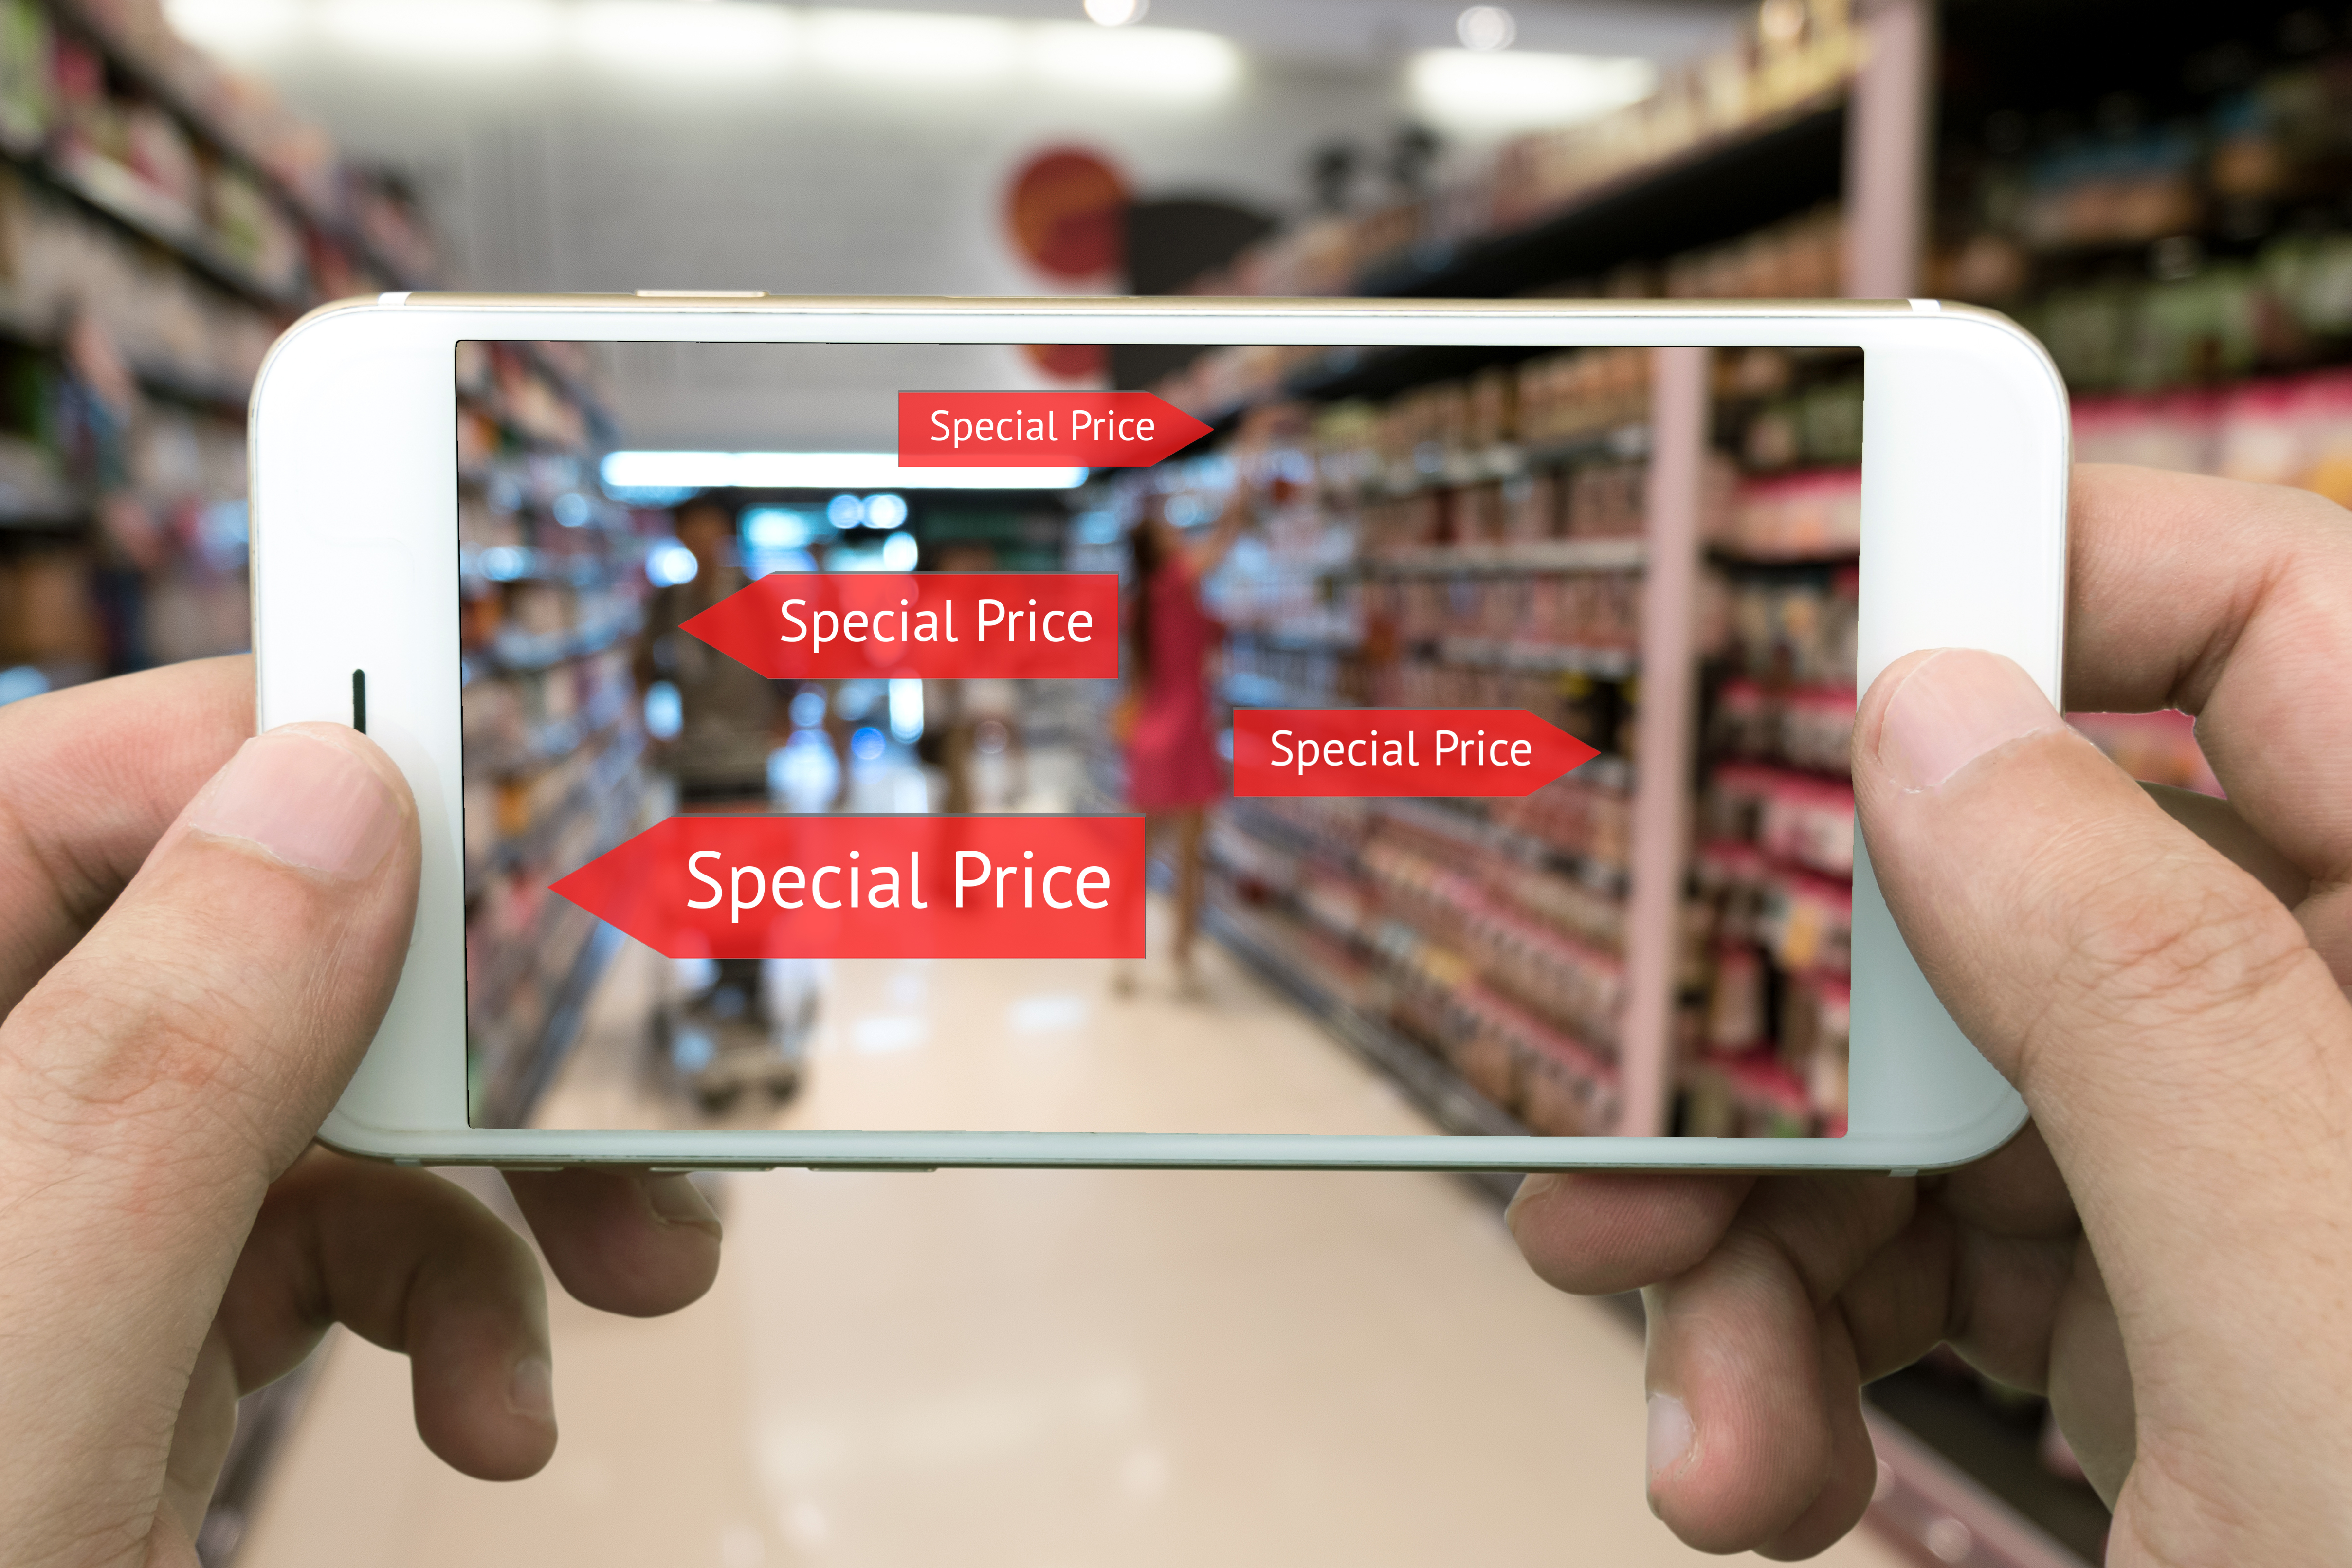 Customer using augmented reality while shopping in store.